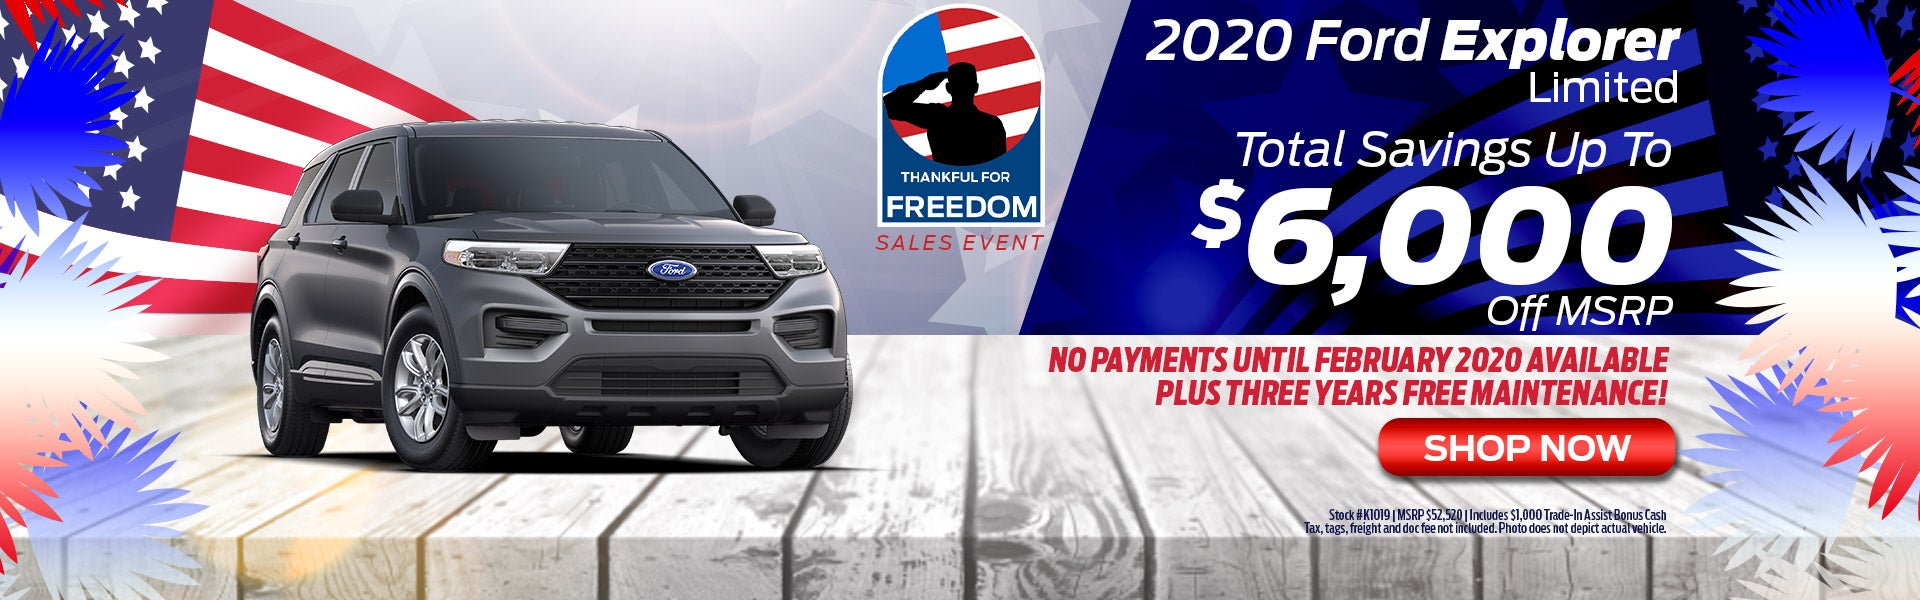 Car Dealerships That Pay Off Your Trade >> Local Ford Dealership Palmetto Ford New Ford Cars And Trucks